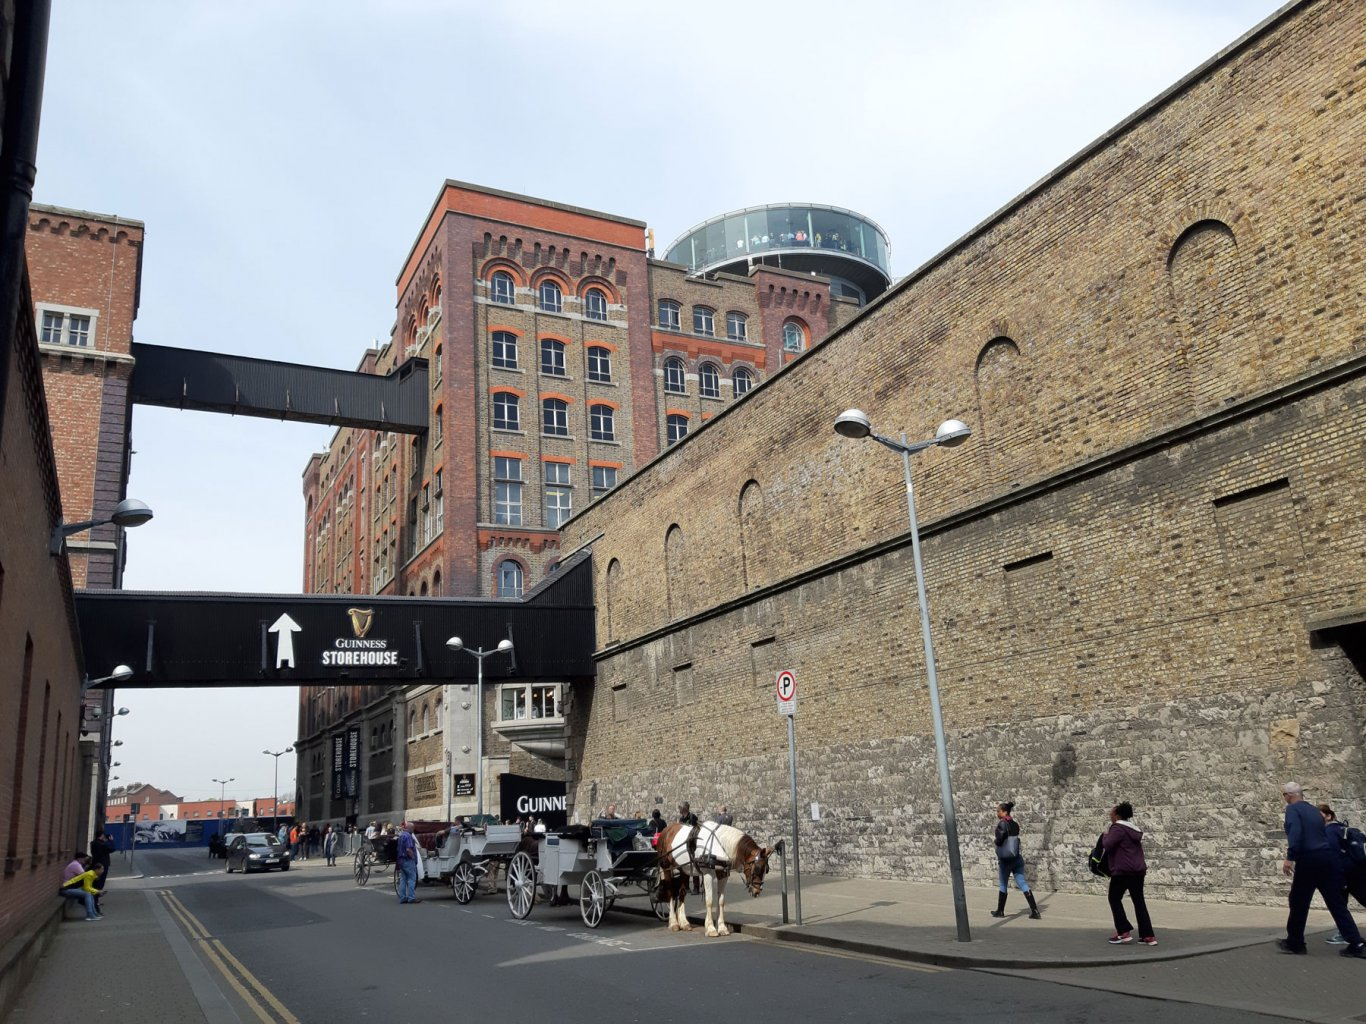 Image of outside of Guinness Storehouse